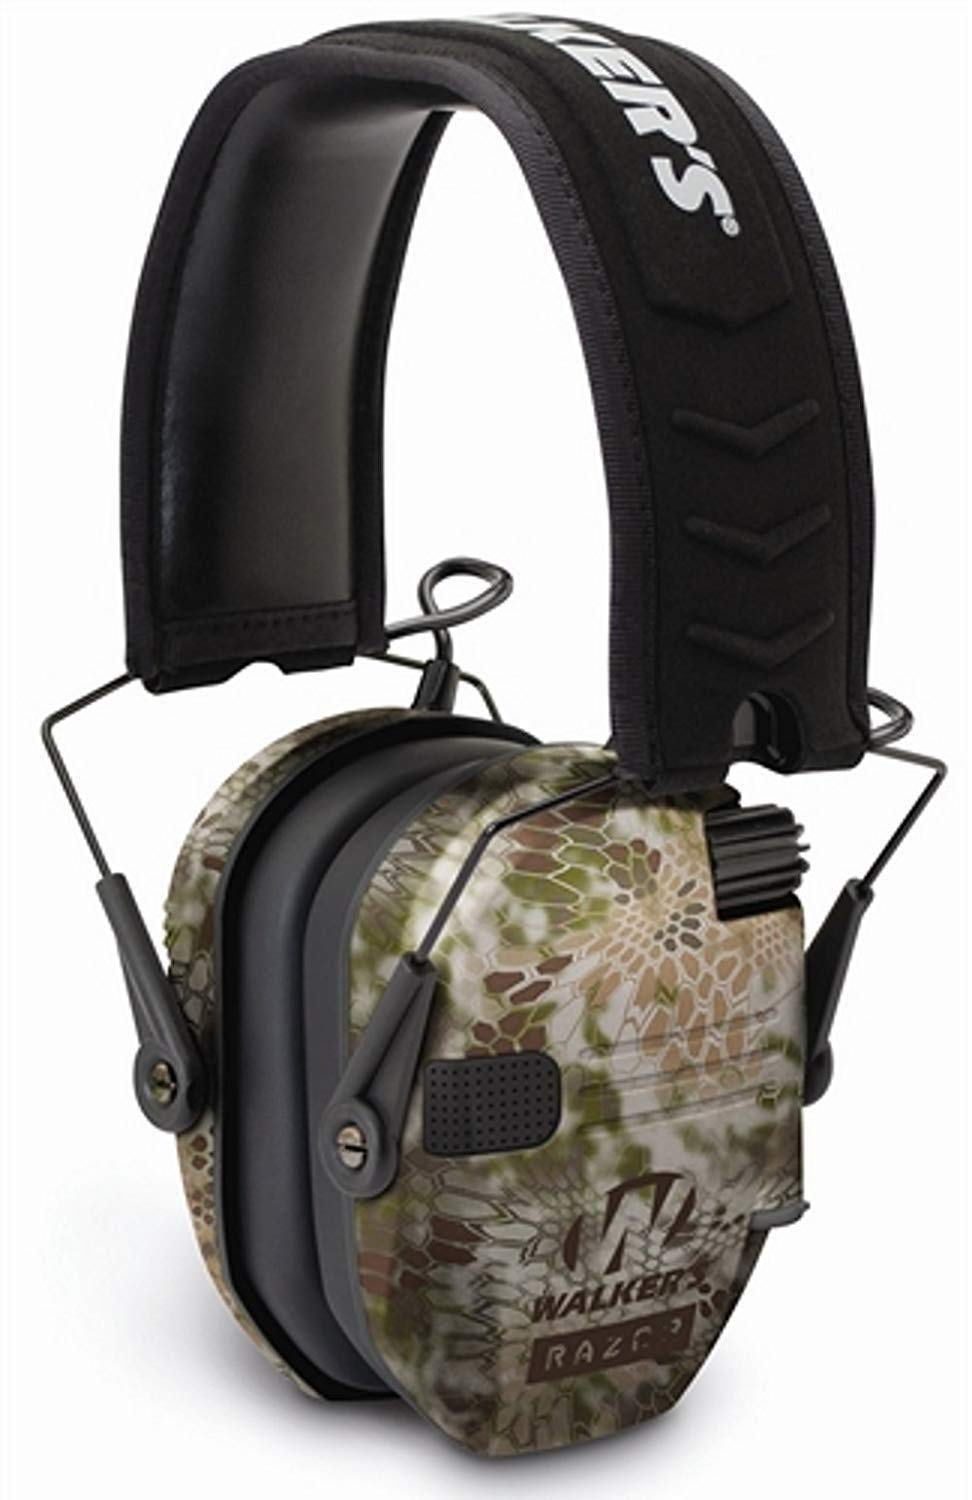 Walkers Razor Slim Electronic Shooting Hearing Protection Muff (Kryptek Camo) with Protective Case by Walkers (Image #4)